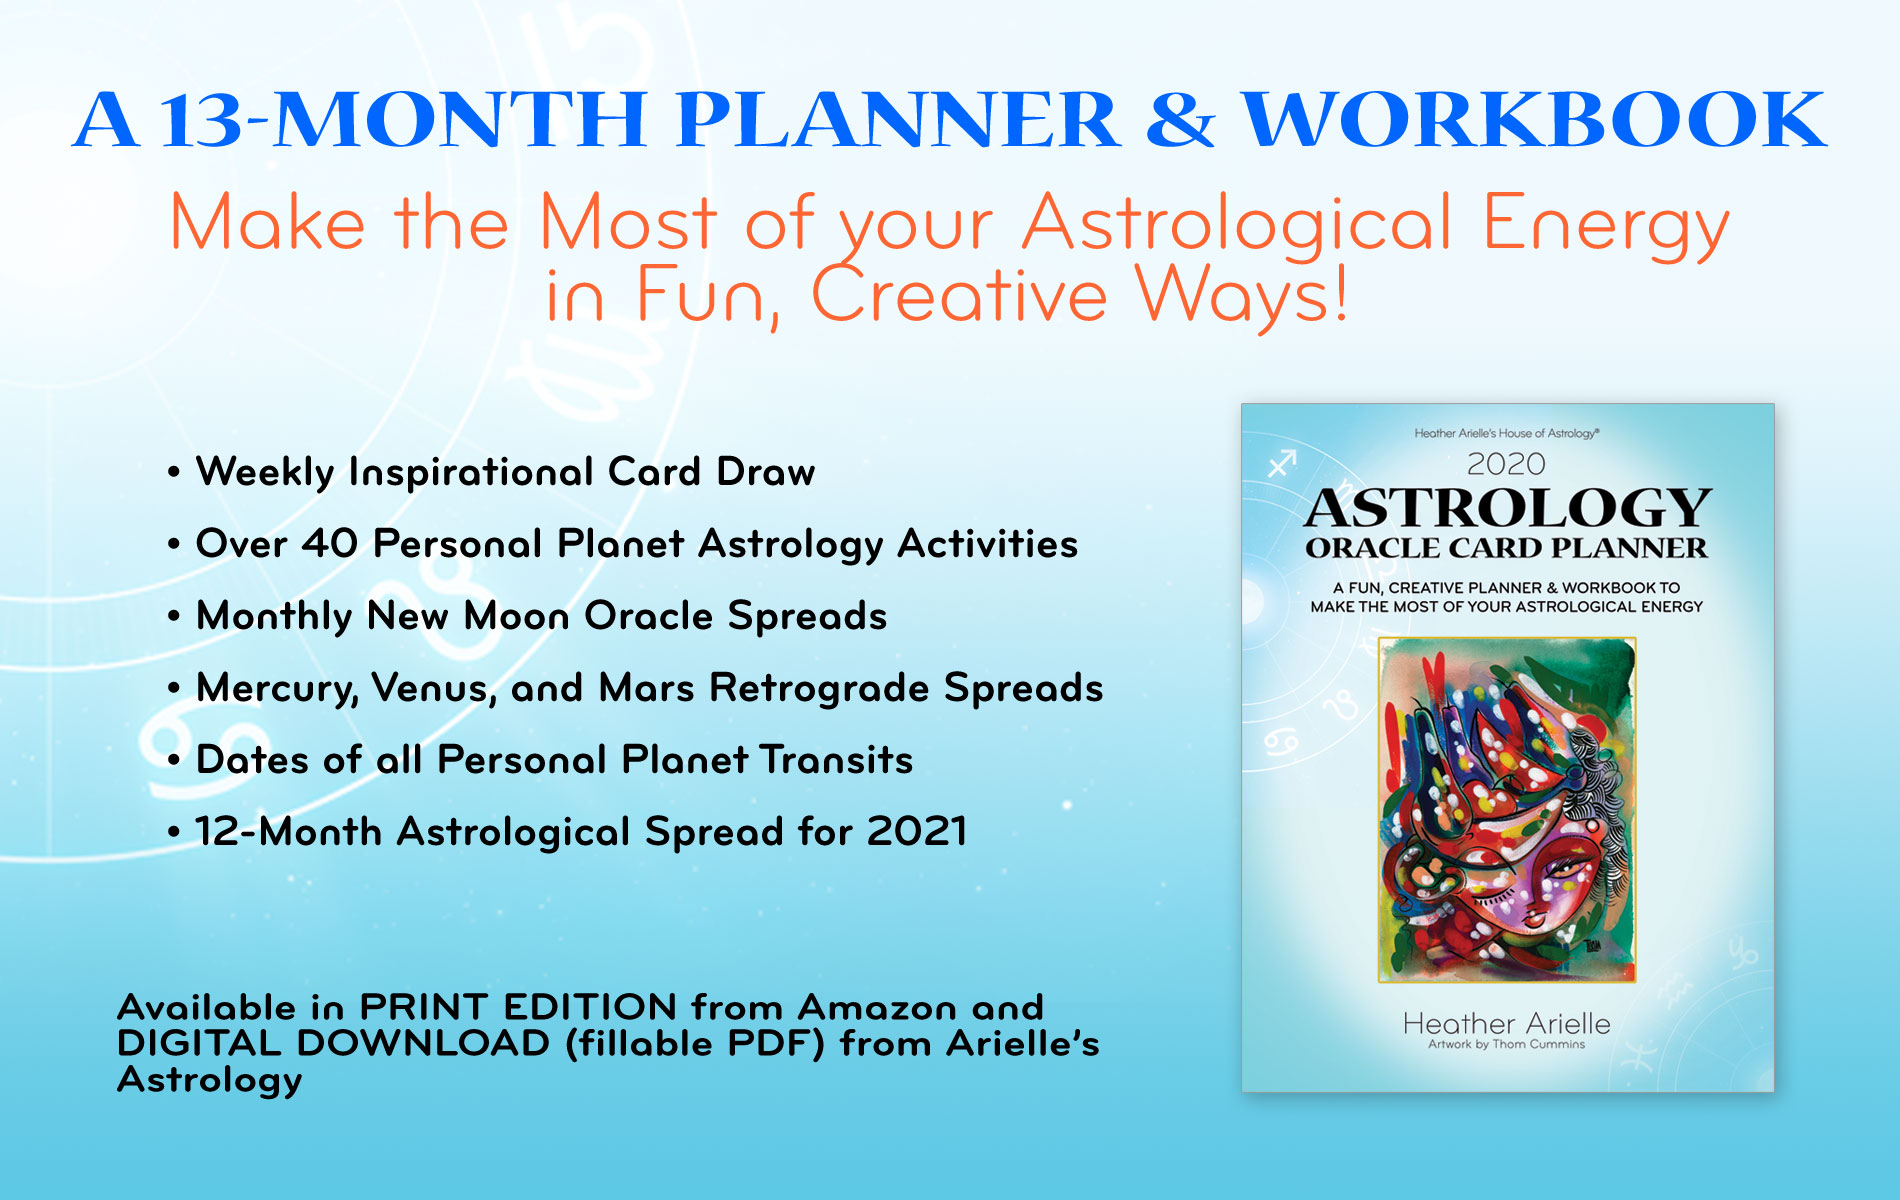 astrology oracle card planner